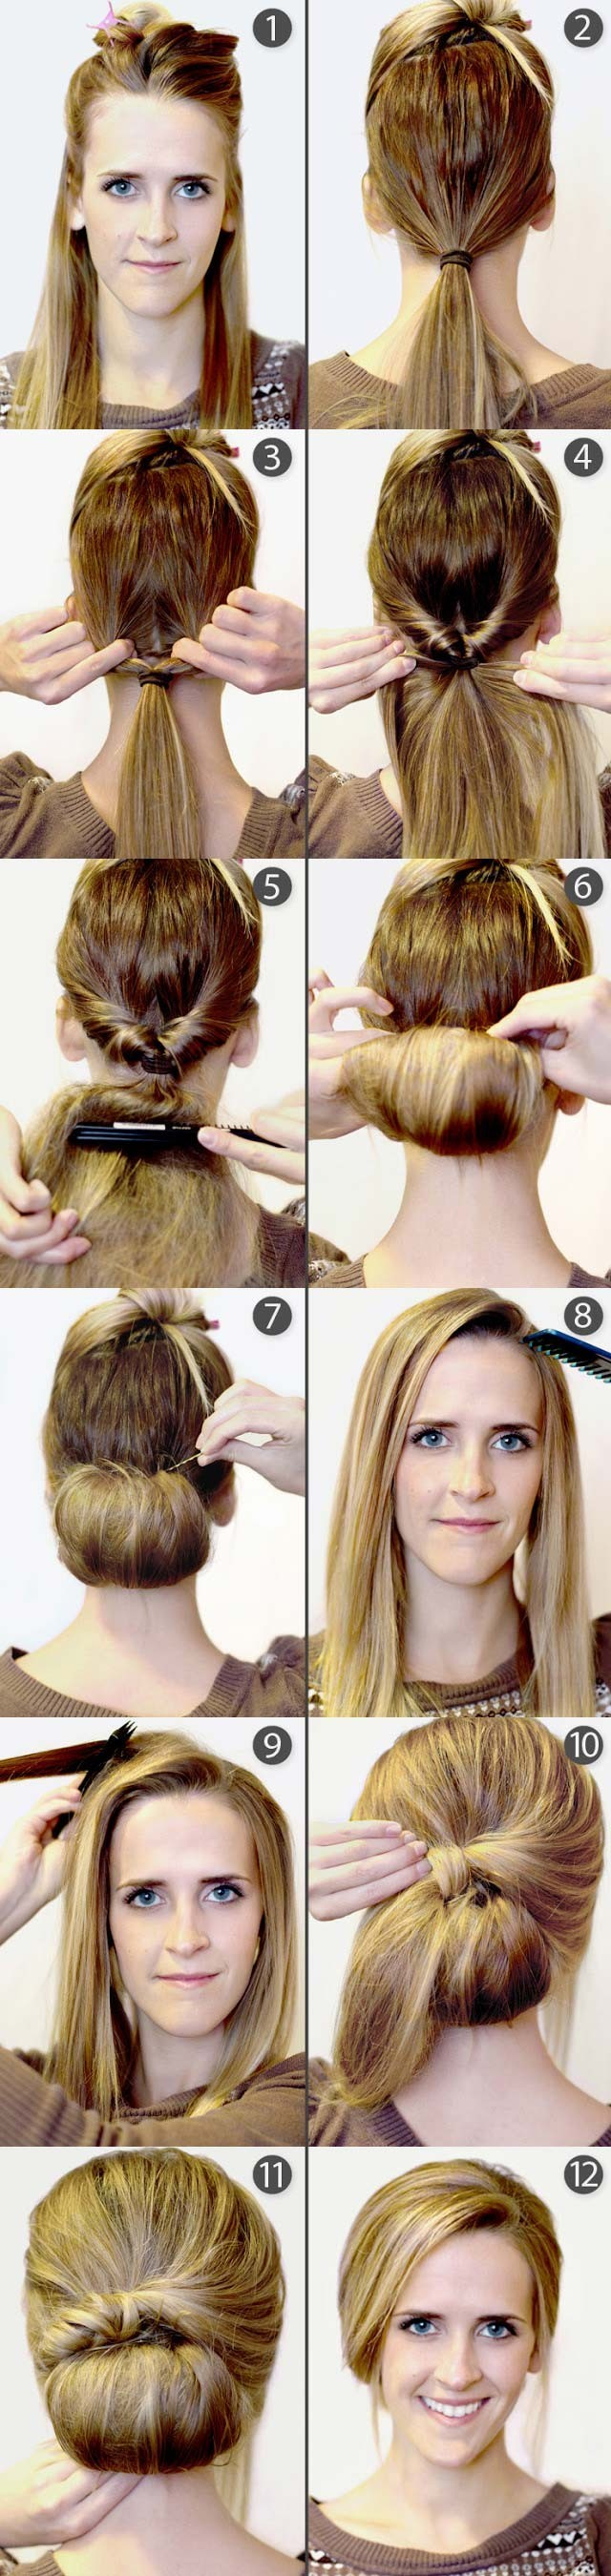 15 Cute Hairstyles Step By Step Hairstyles For Long Hair Popular Haircuts